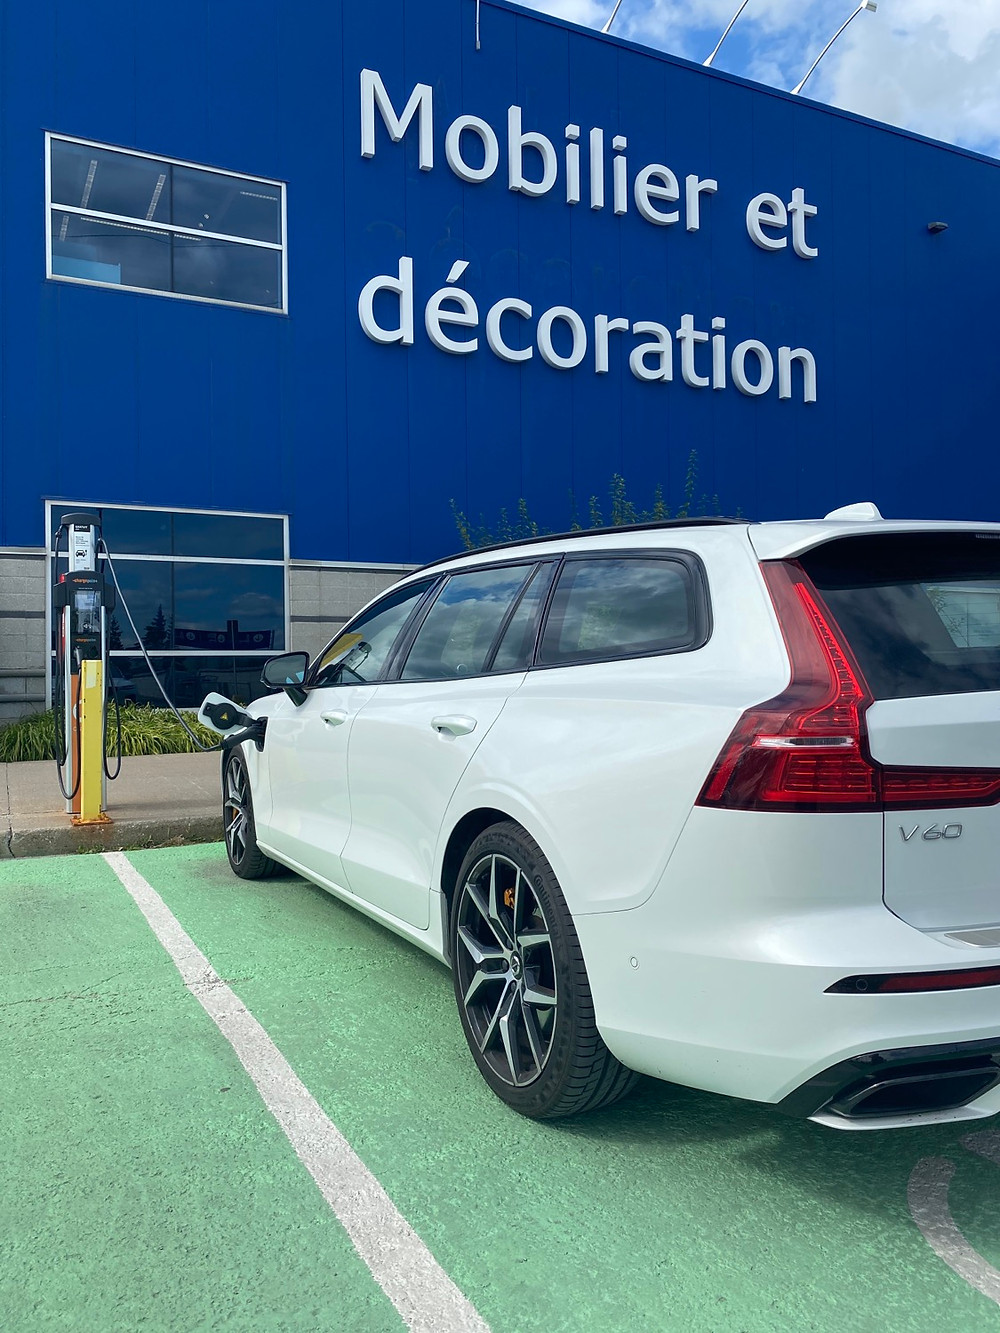 Volvo V60 at IKEA